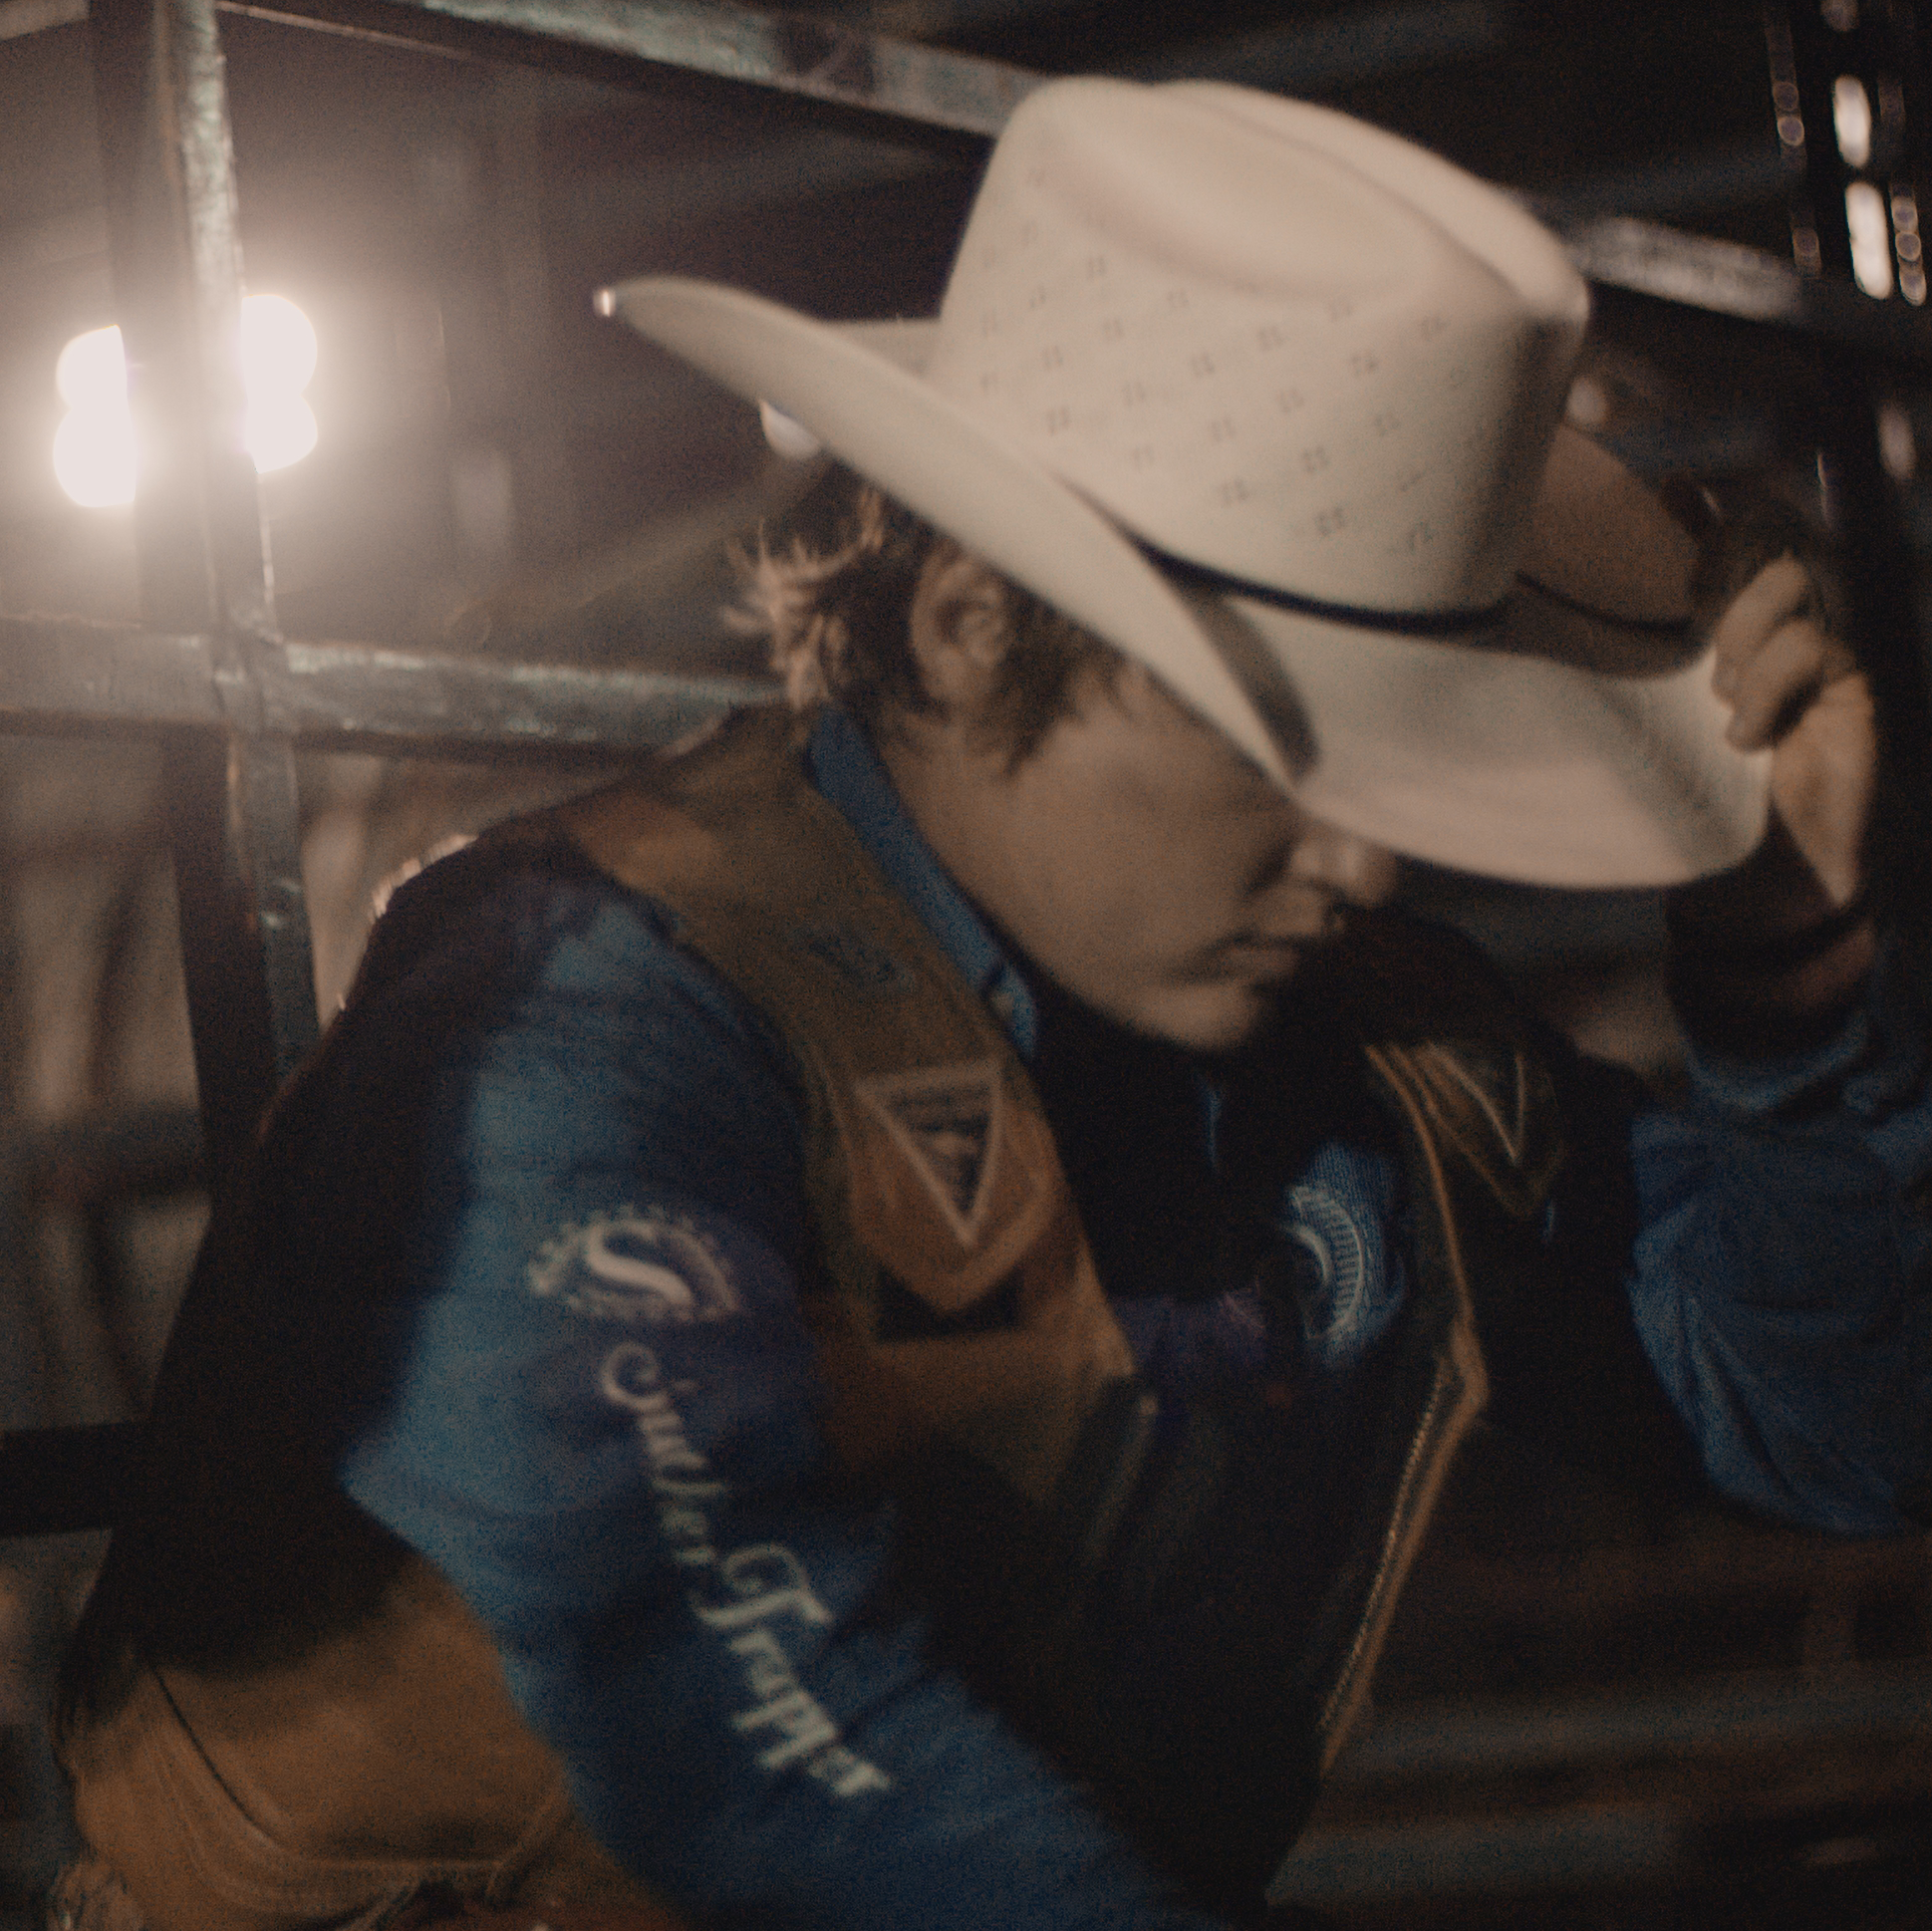 TUNNEL VISION - THE STORY OF AN AMERICAN BULL RIDER